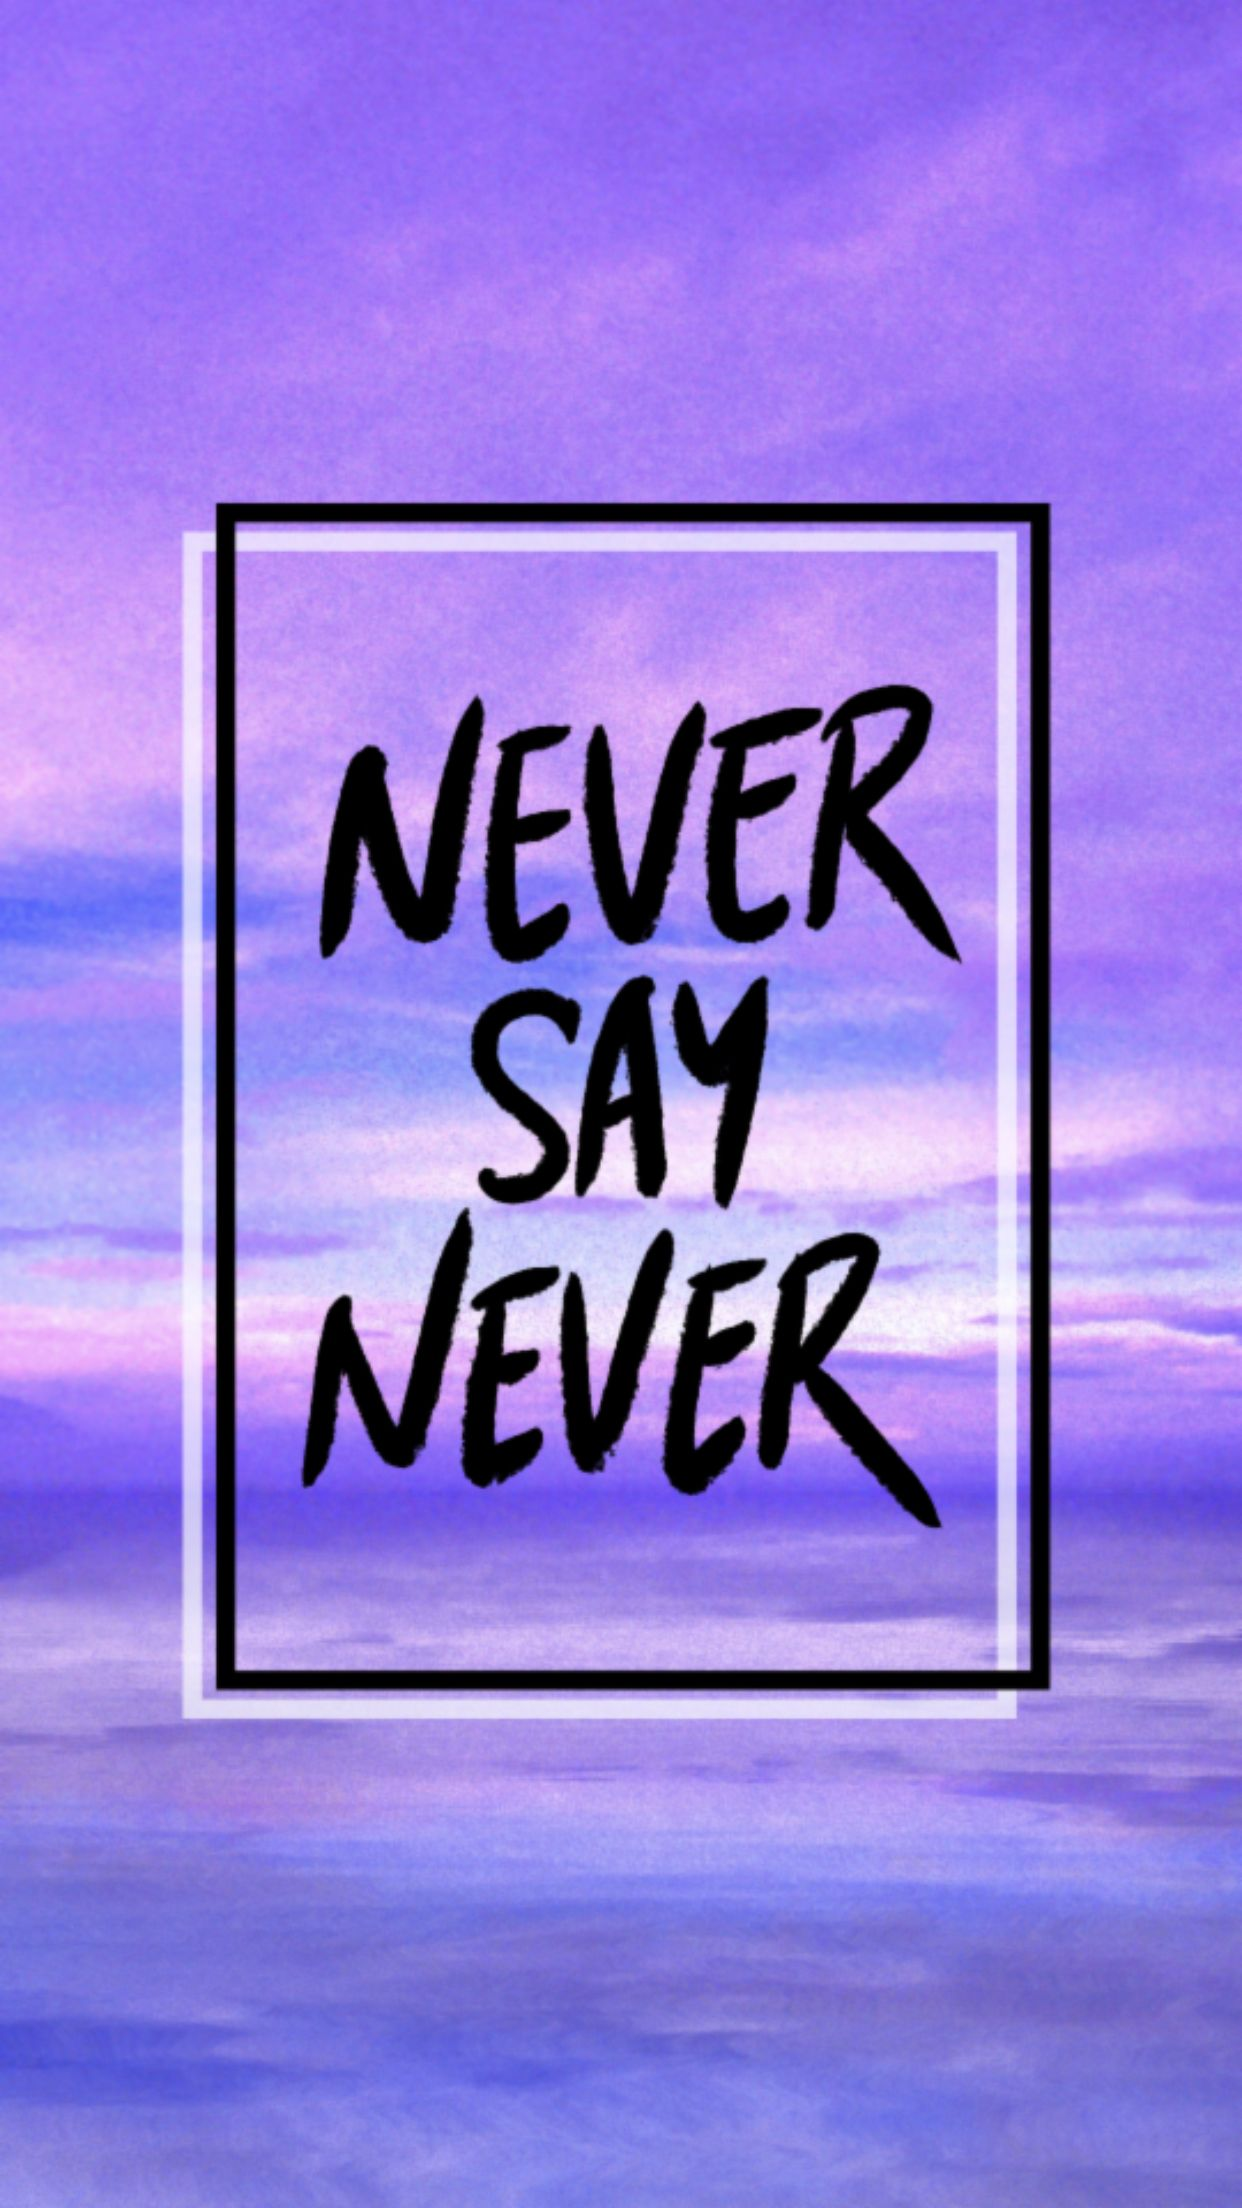 Justin iphone wallpaper tumblr - Never Say Never Justin Bieber Lockscreen Or Wallpaper Buzzfeed